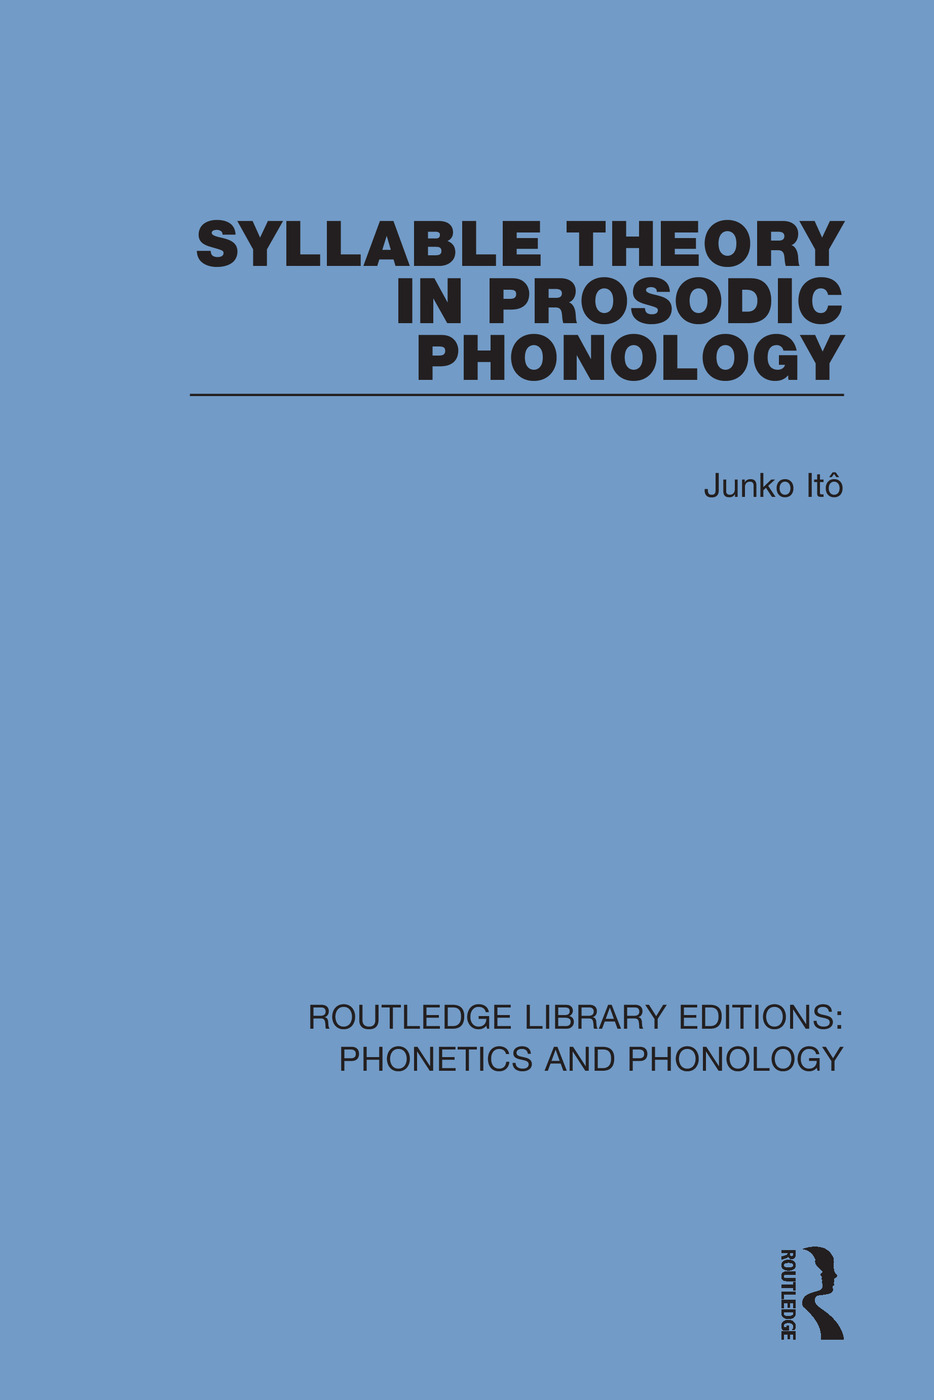 Syllable Theory in Prosodic Phonology: 1st Edition (Paperback) book cover